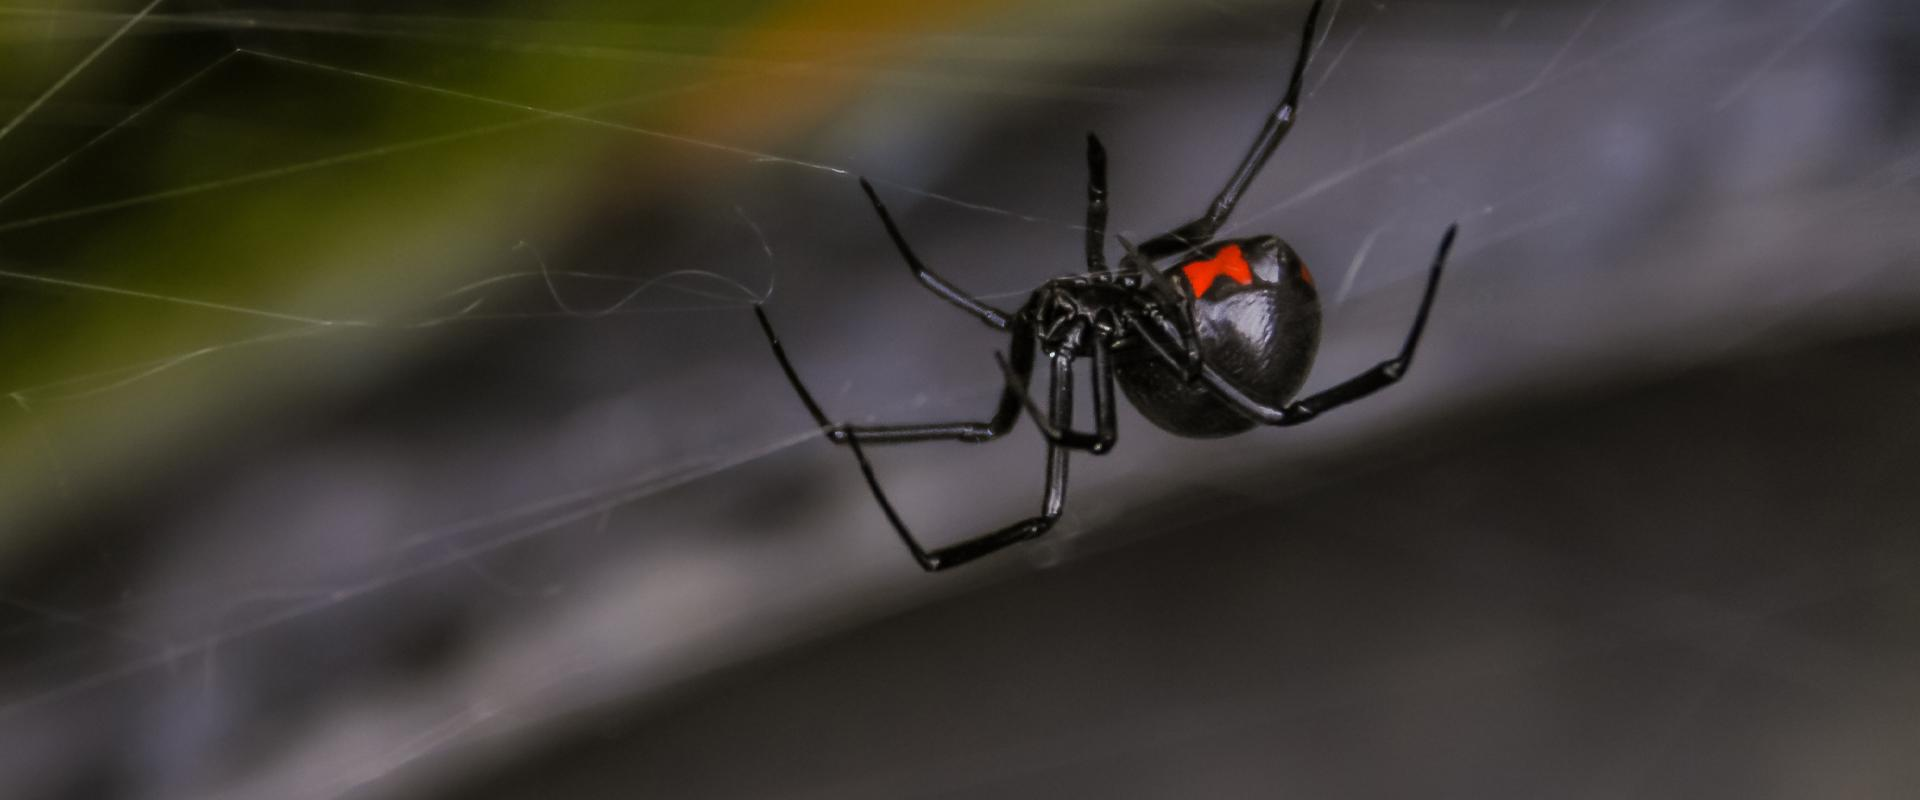 black widow spider in its web